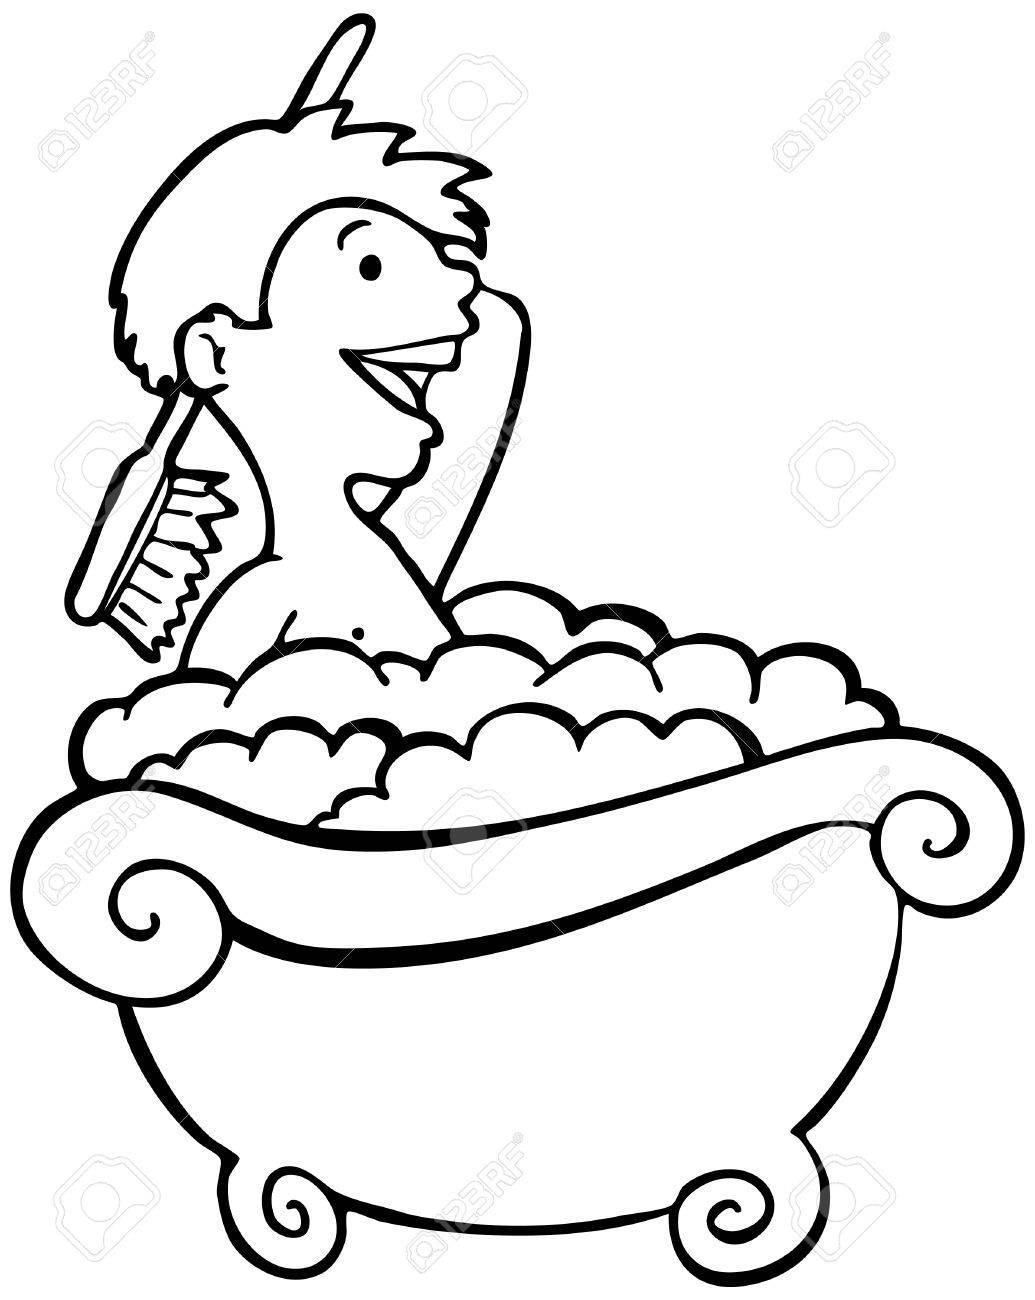 Toran clipart black and white graphic library Taking bath clipart black and white 2 » Clipart Portal graphic library